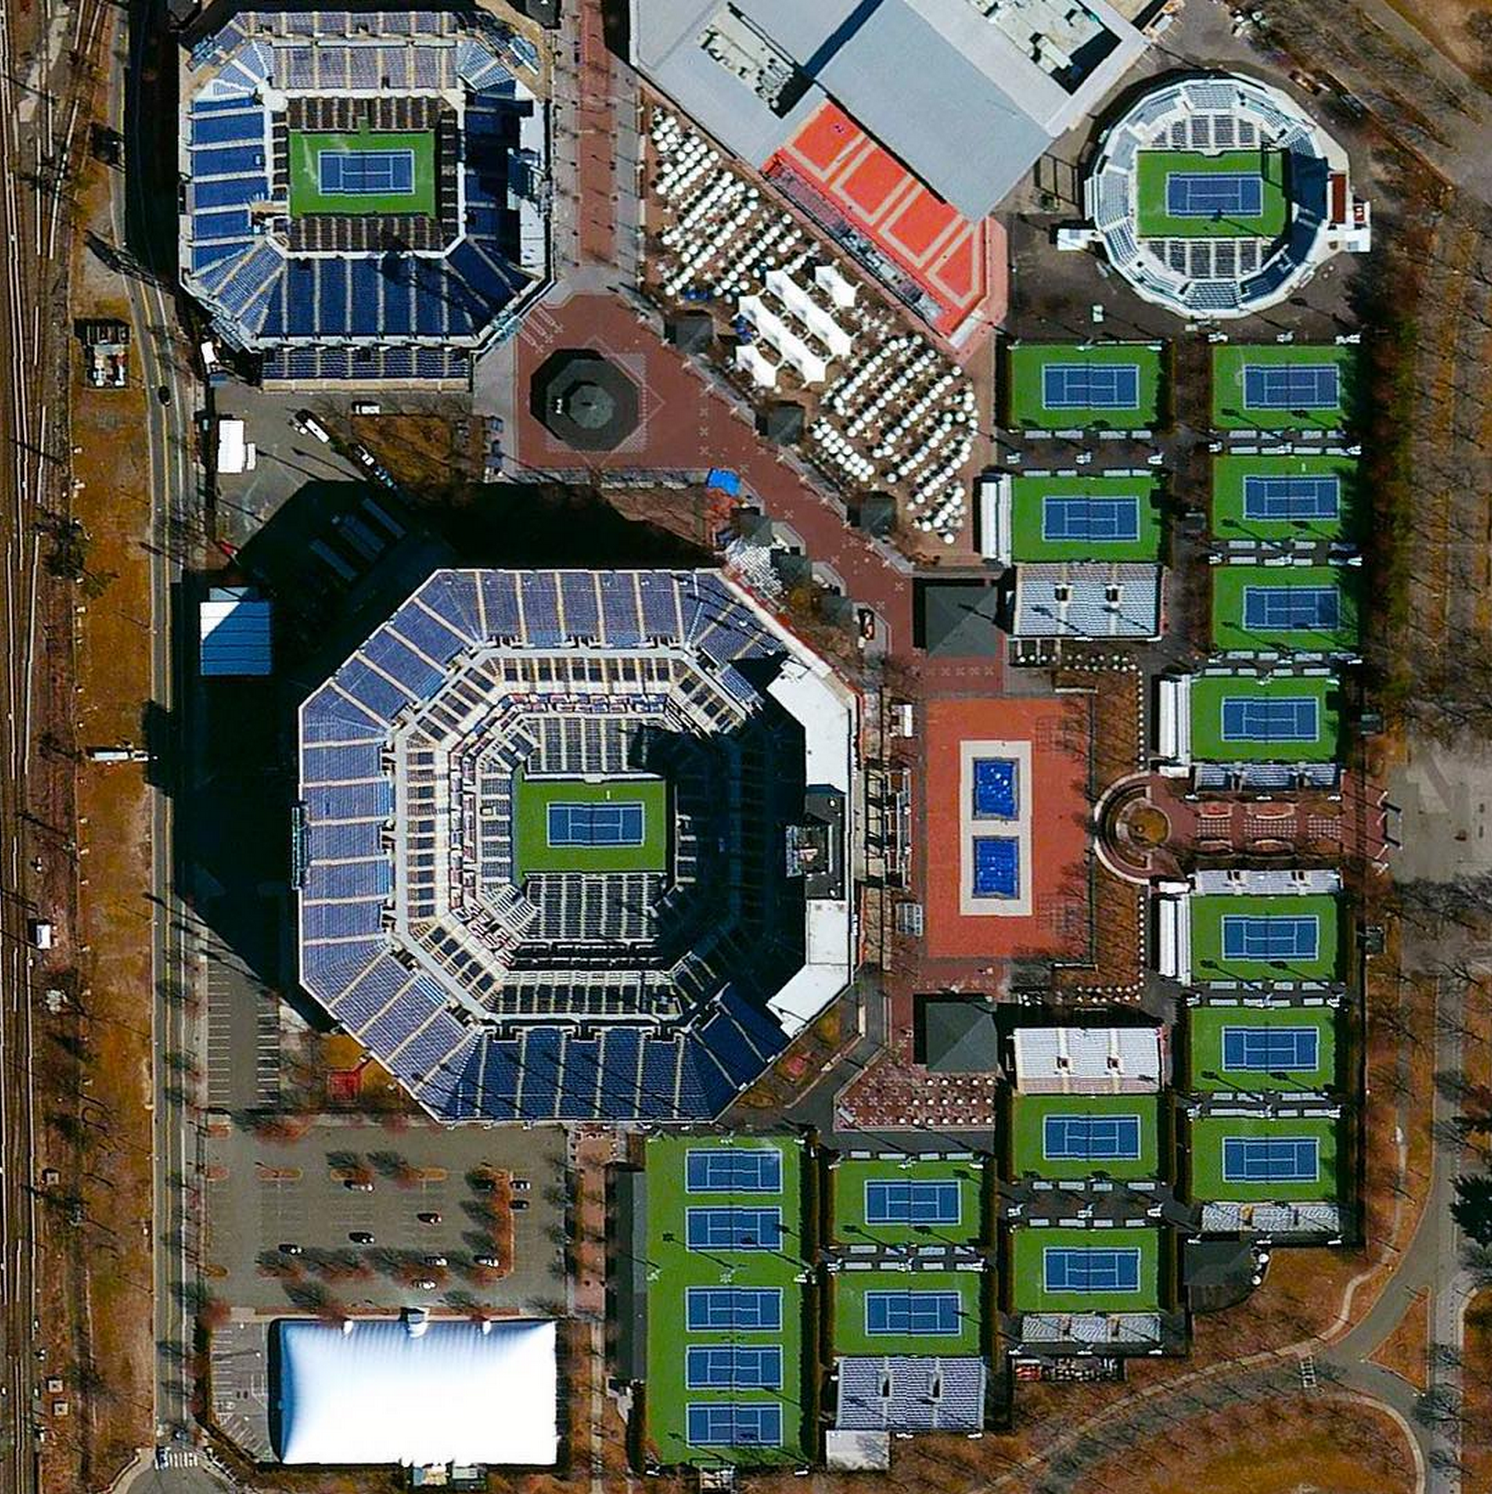 9/13/2015   U.S Open   New York City, New York, USA  40.750367600°, -73.845611800°    The U.S. Open Men's Tennis Championship Final will begin shortly at the Billie Jean King National Tennis Center in New York City. The showdown will feature tennis greats Roger Federer and Novak Djokovic.